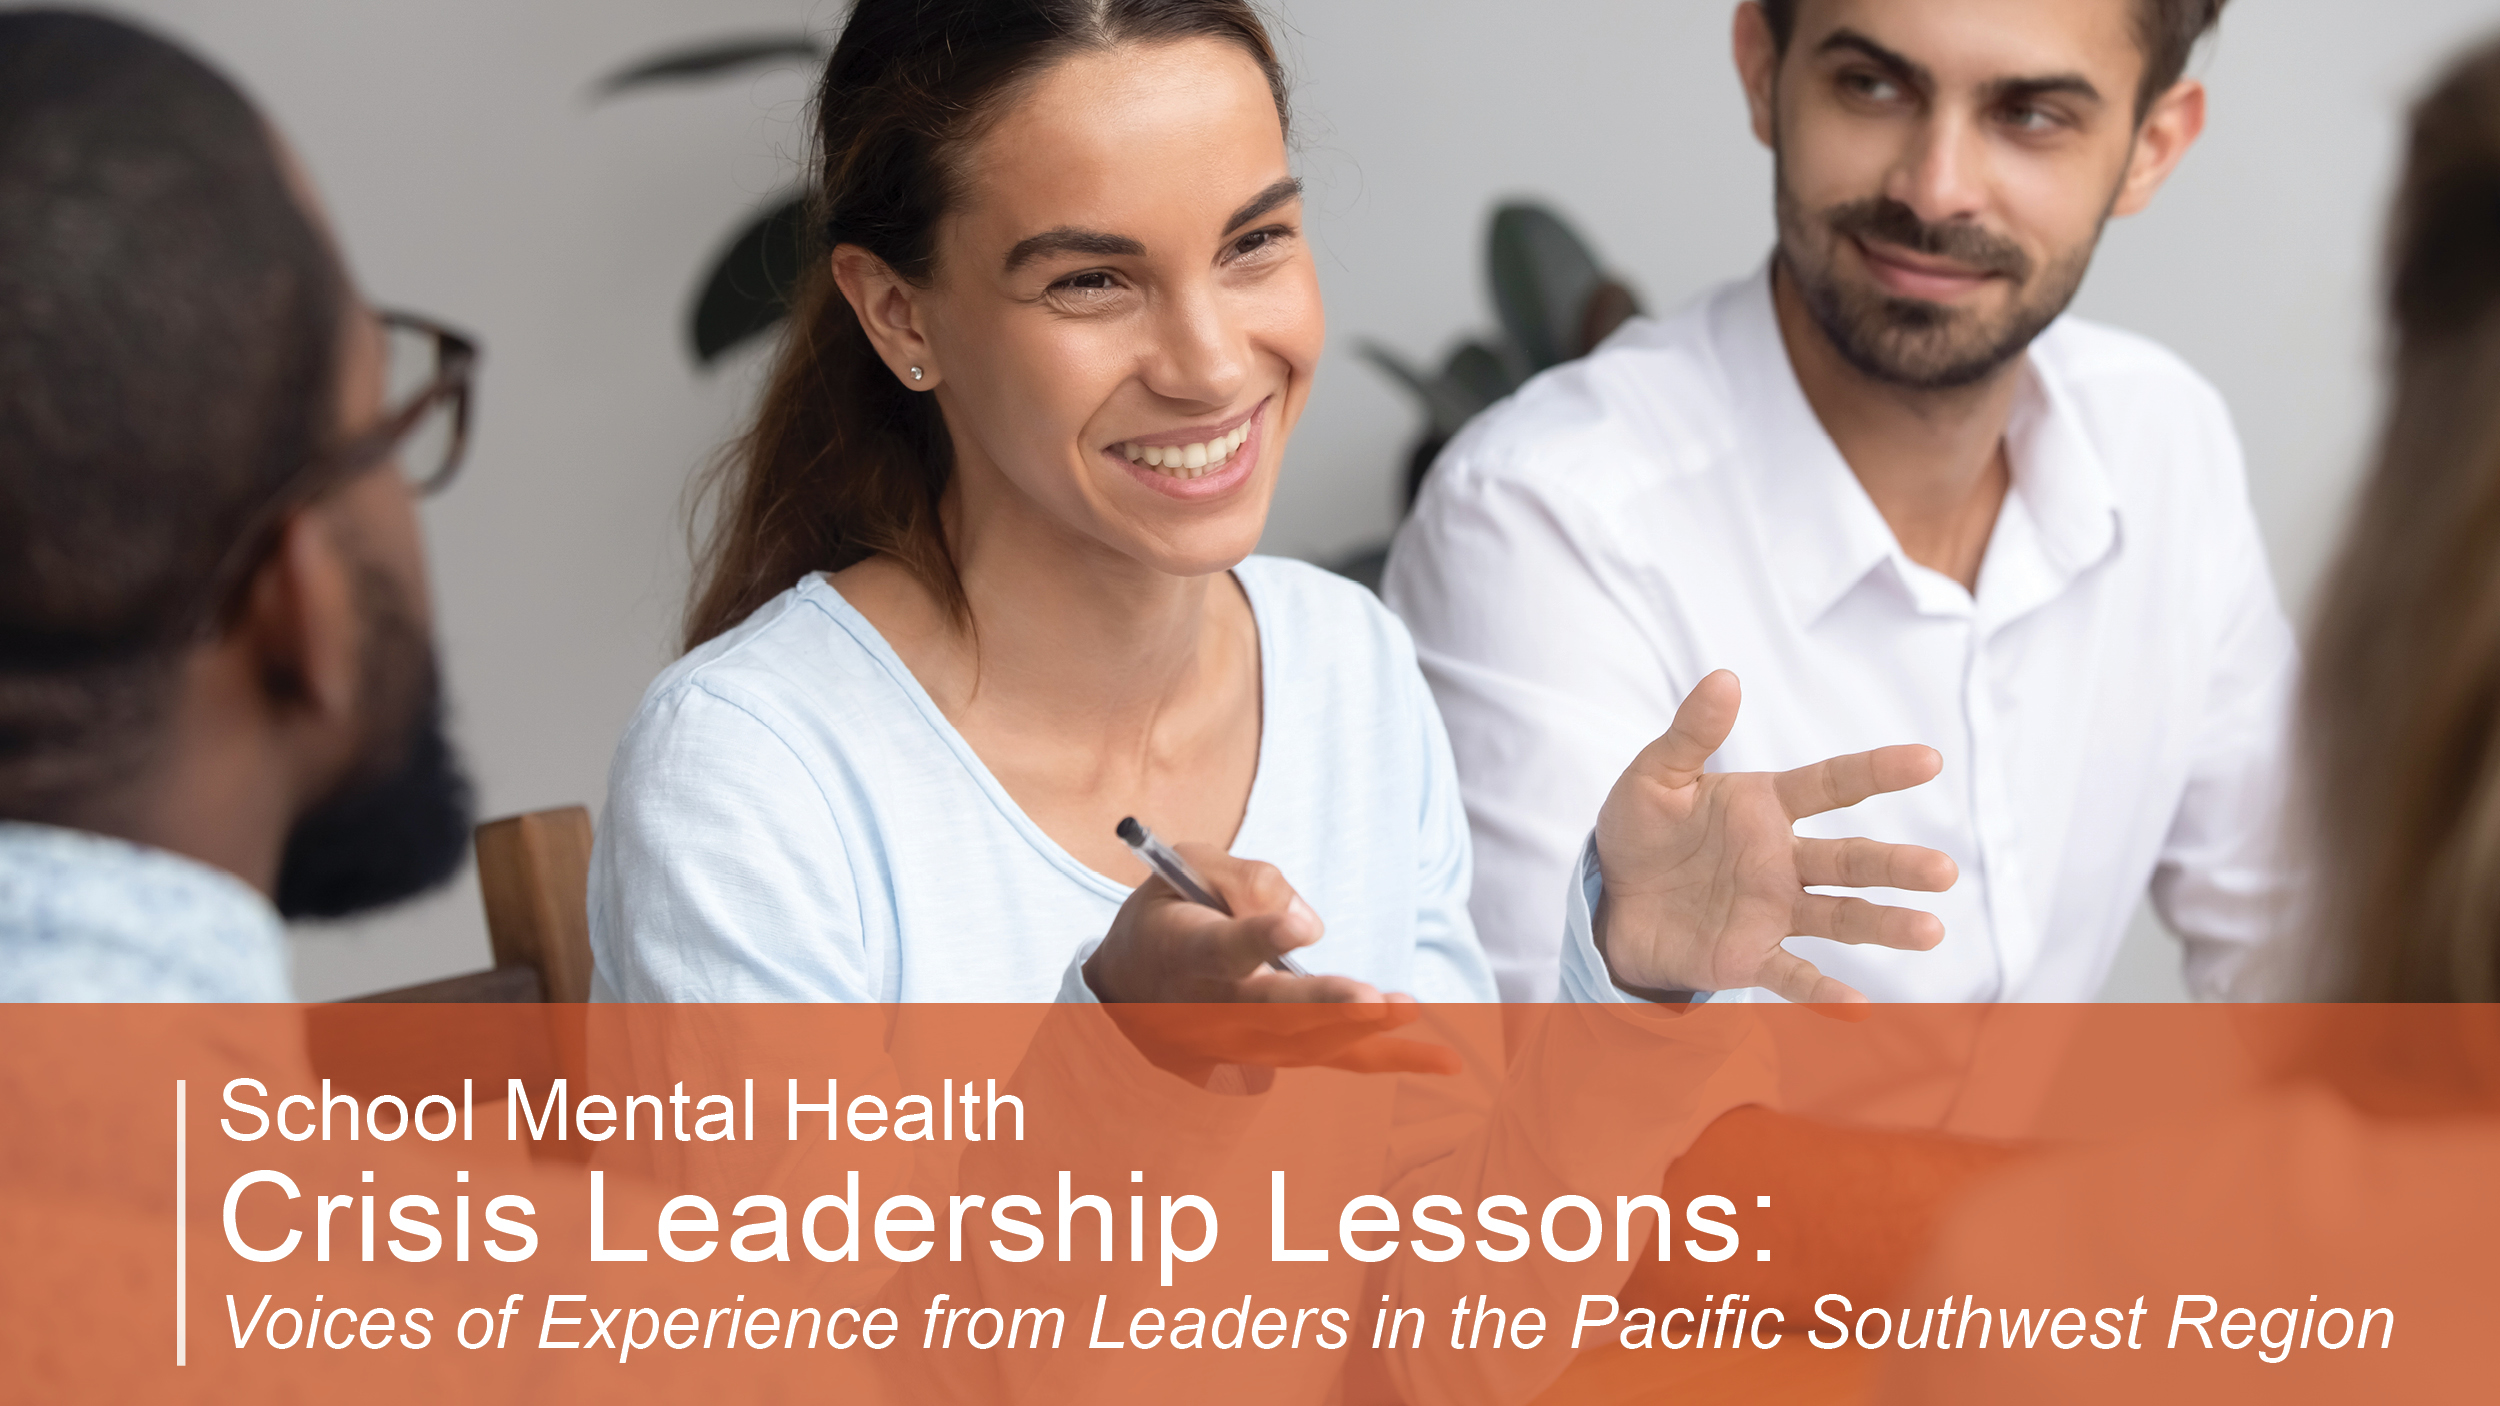 School Mental Health Crisis Leadership Lessons: Voices of Experience from Leaders in the Pacific Southwest Region